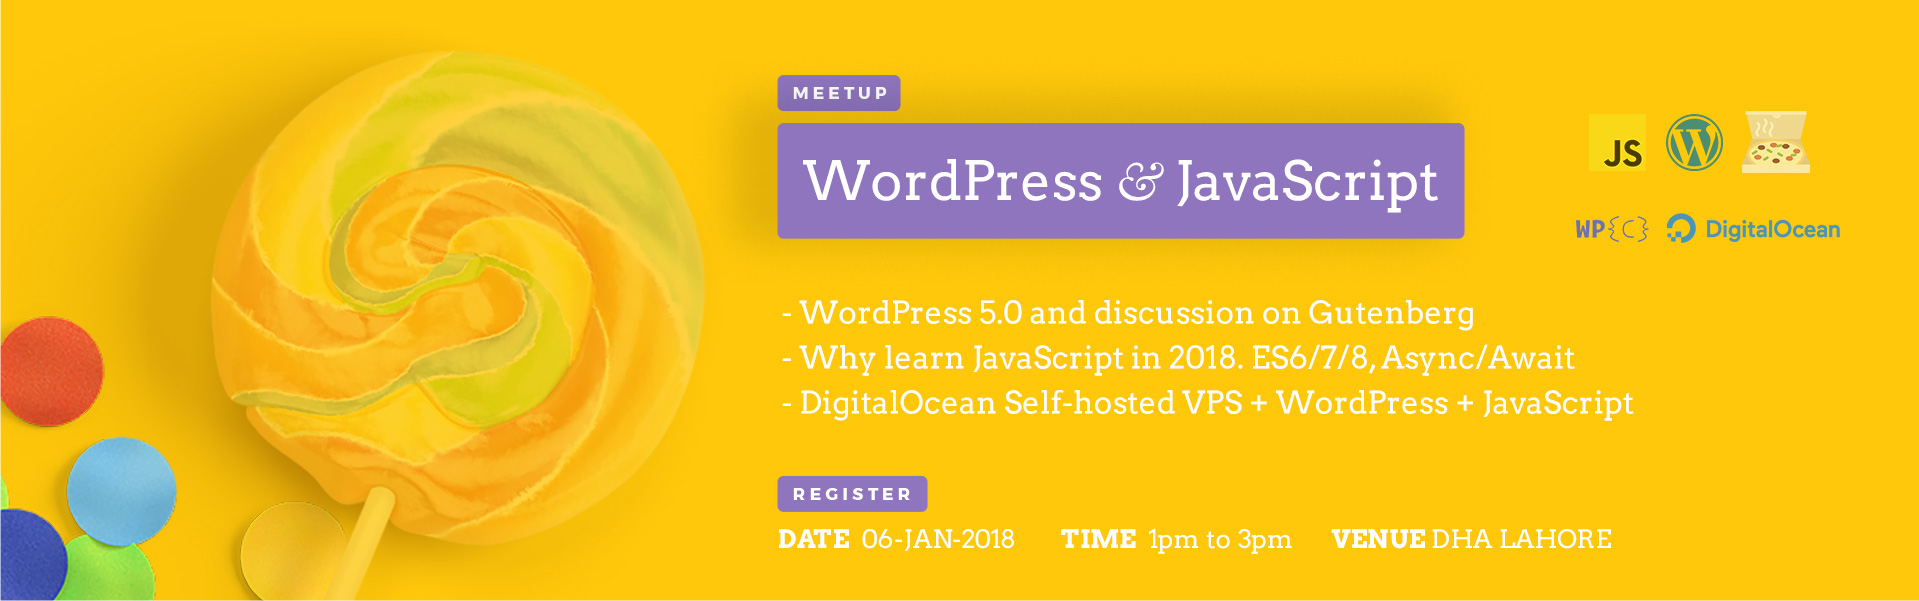 WordPress & JavaScript Meetup